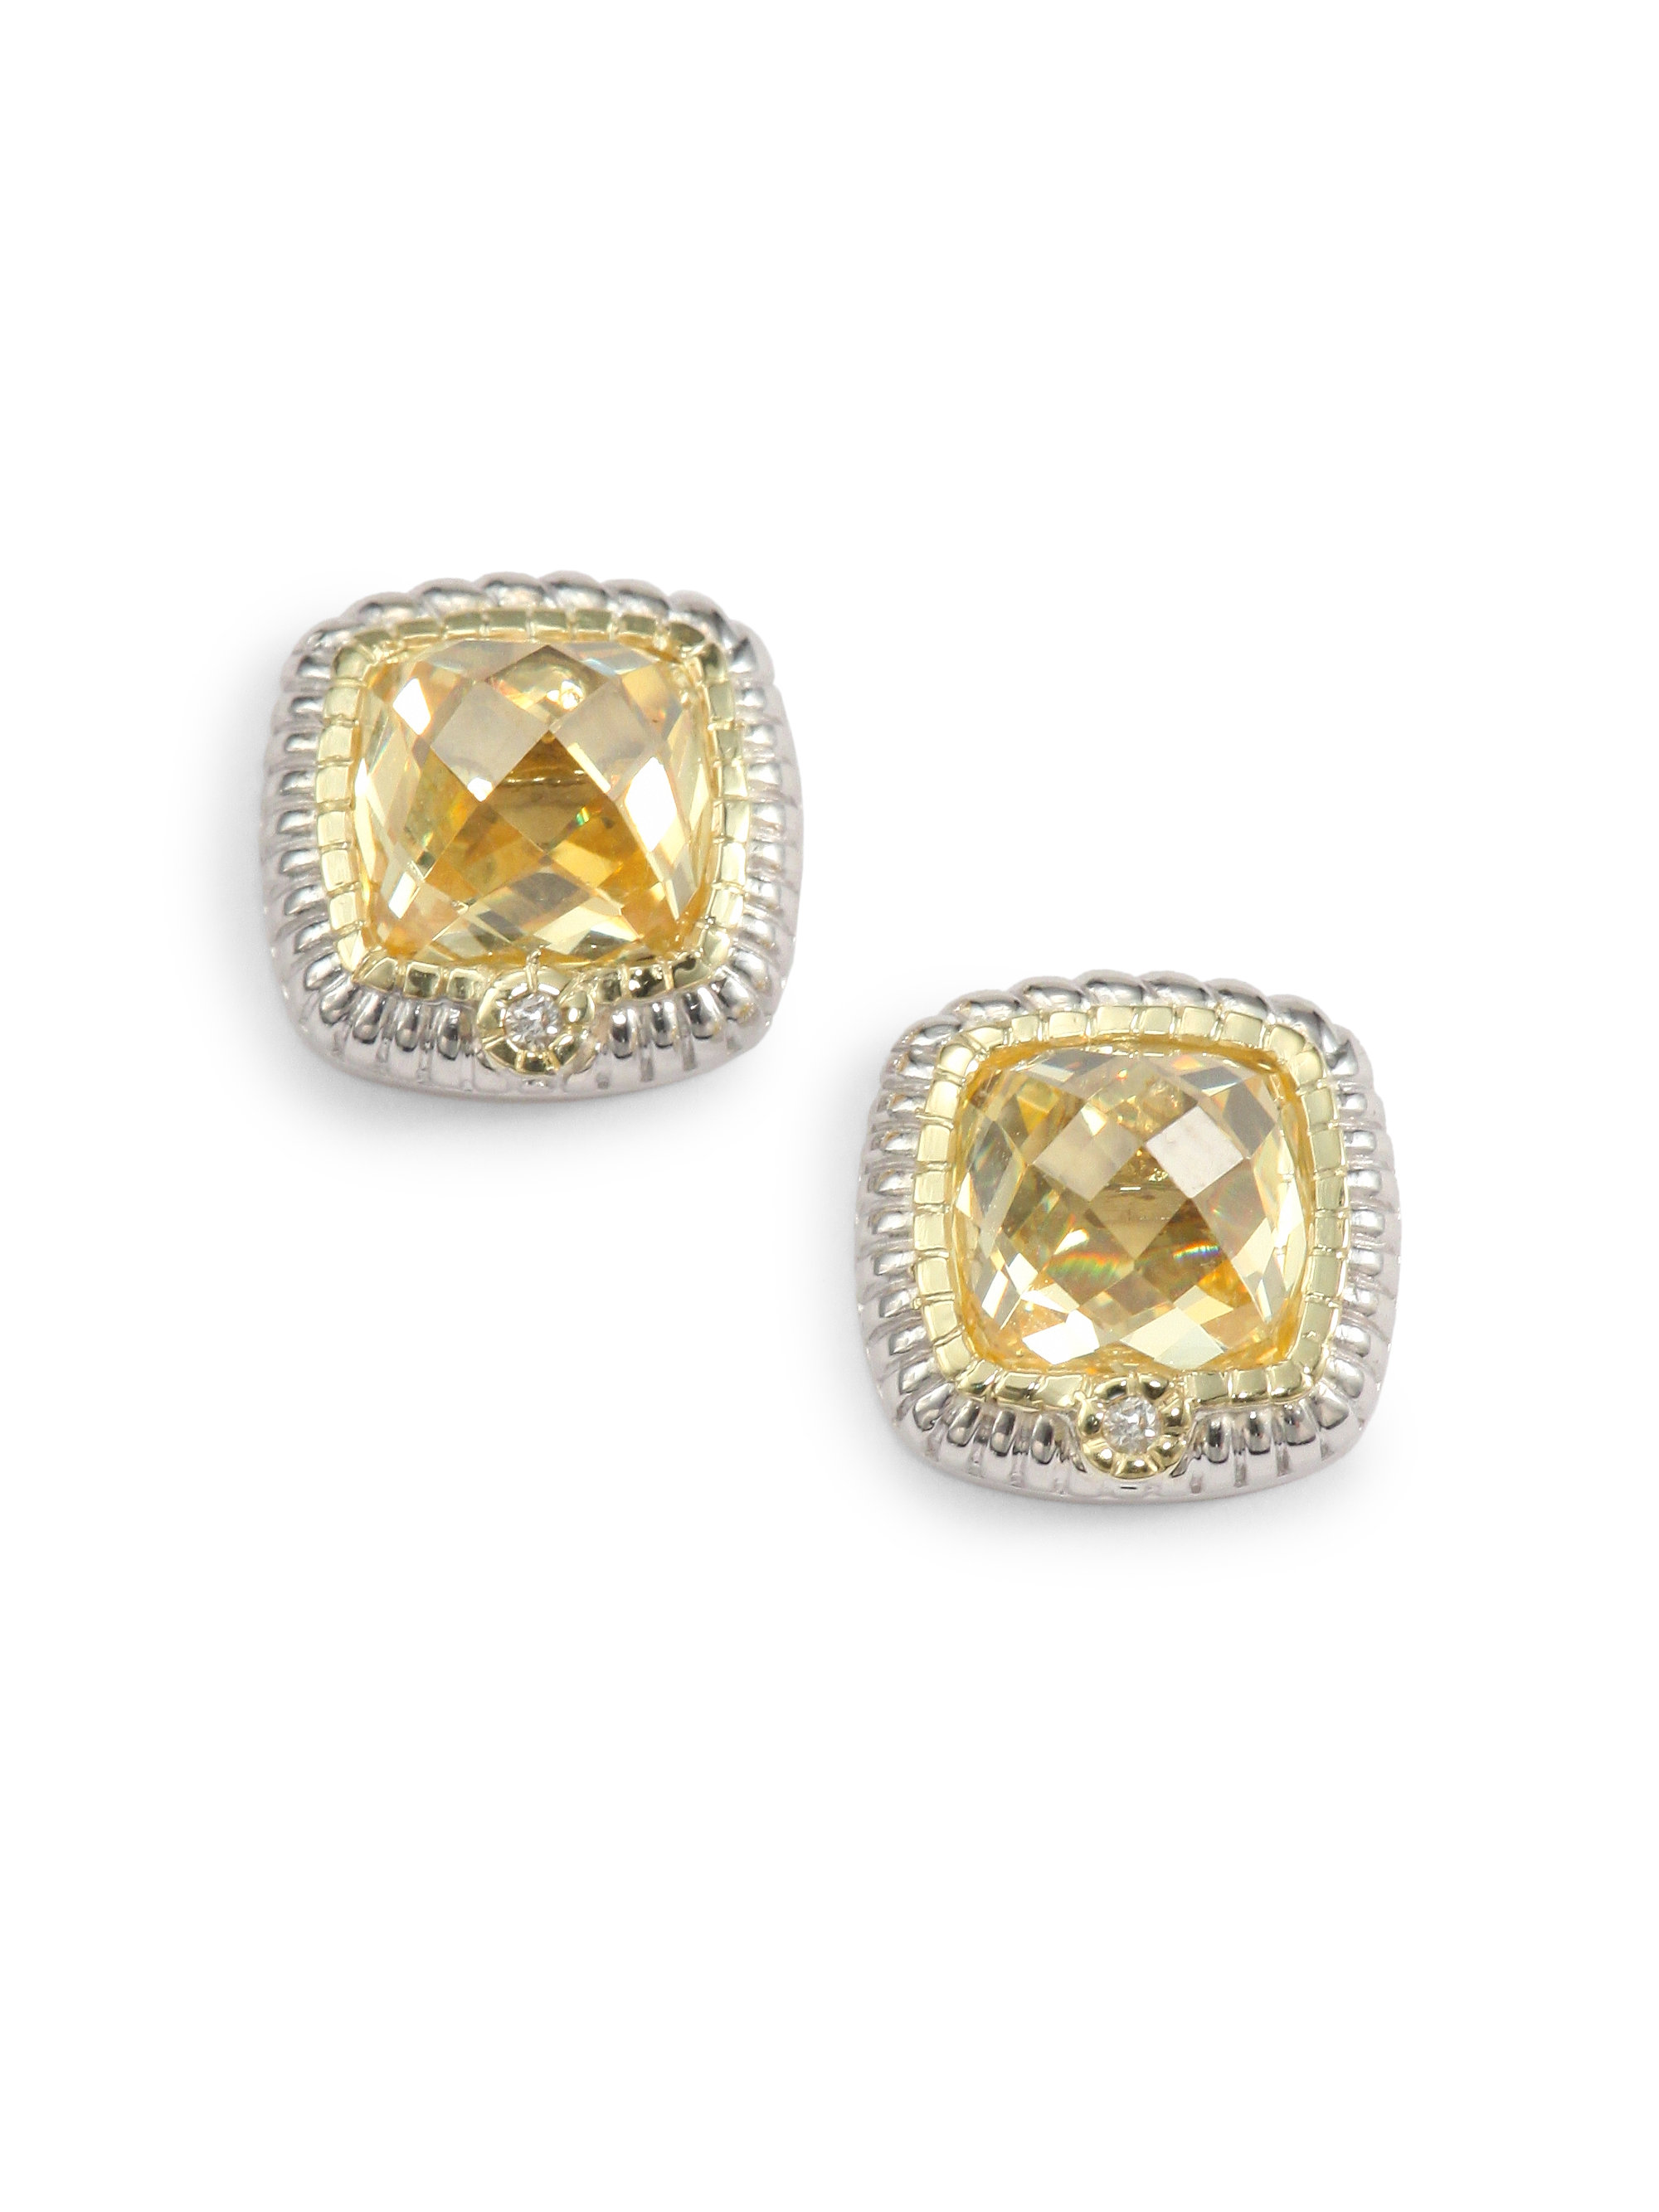 waterman in product designers rustic earrings gold zoom canary diamond wat cathy